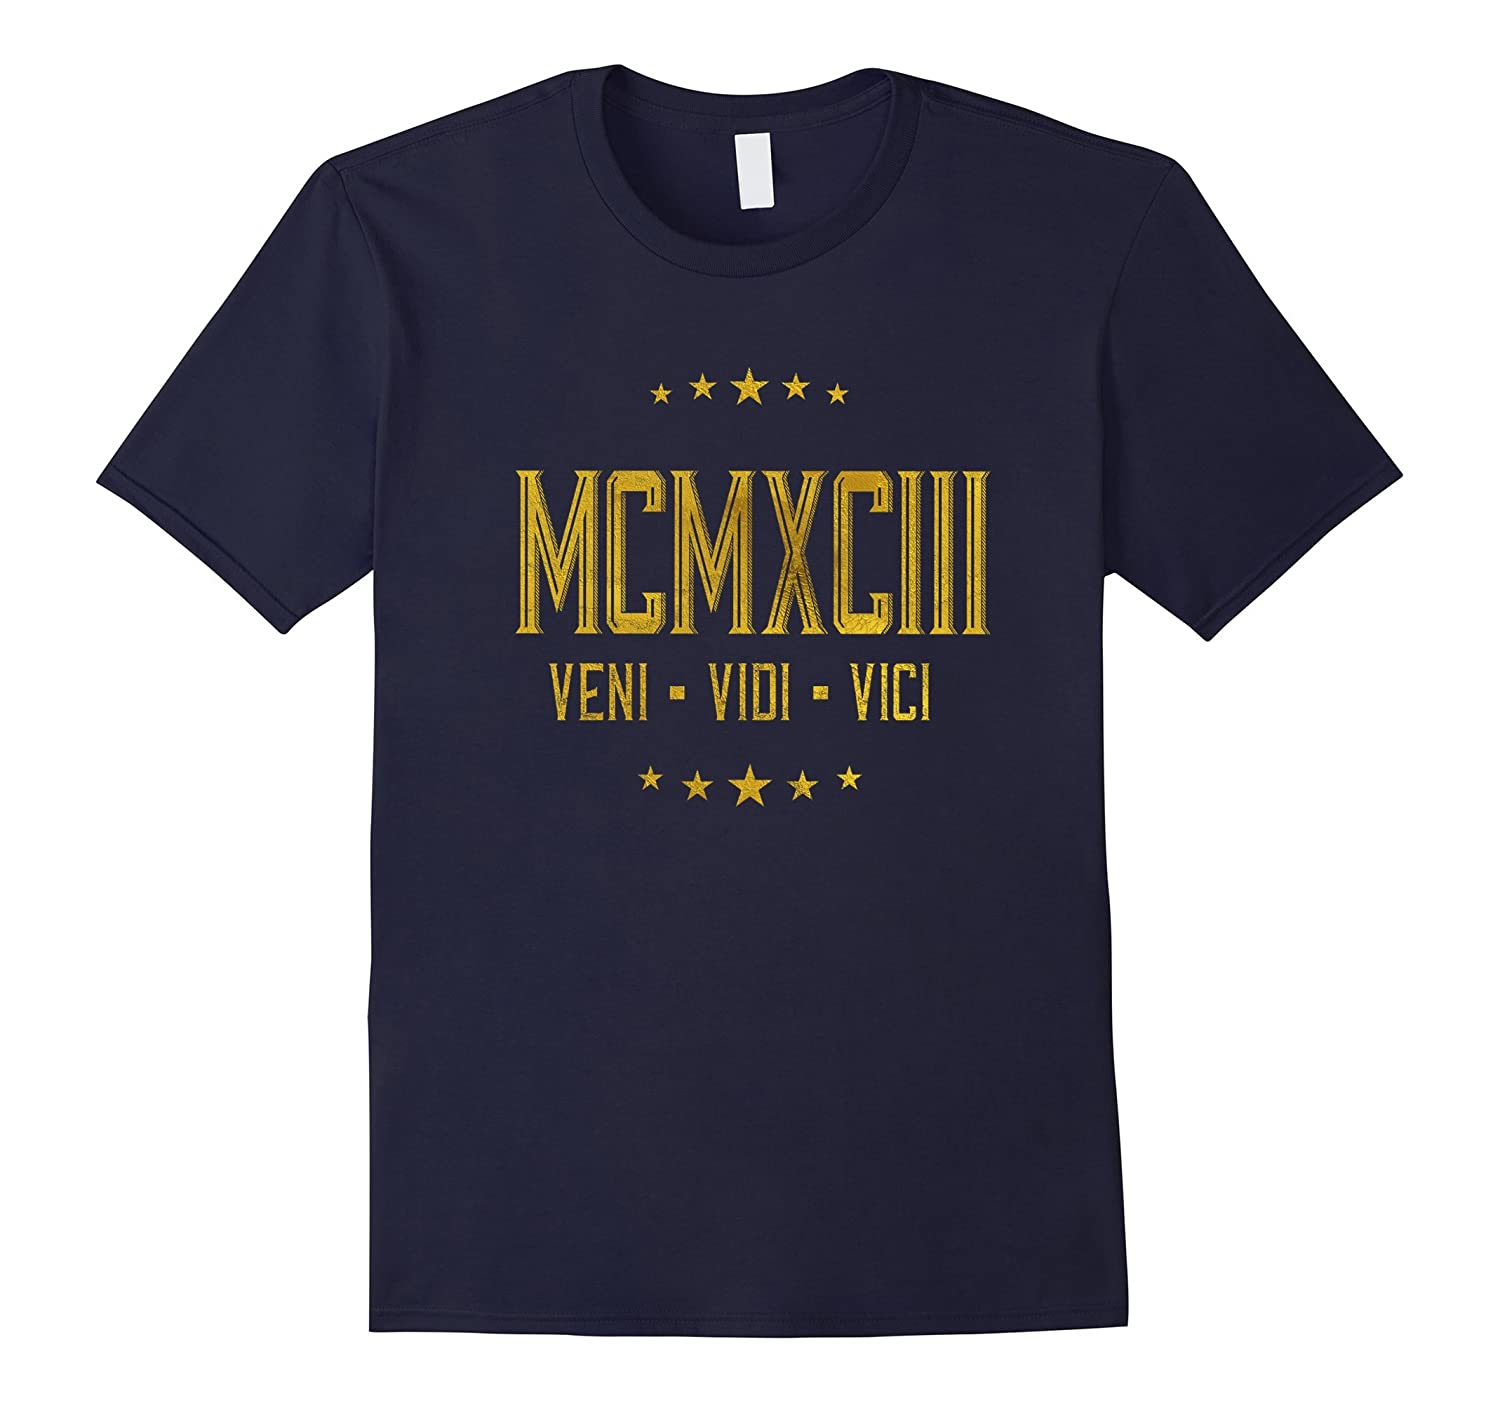 1993 Veni Vidi Vici T-Shirt 24 yrs old Bday 24th Birthday-PL